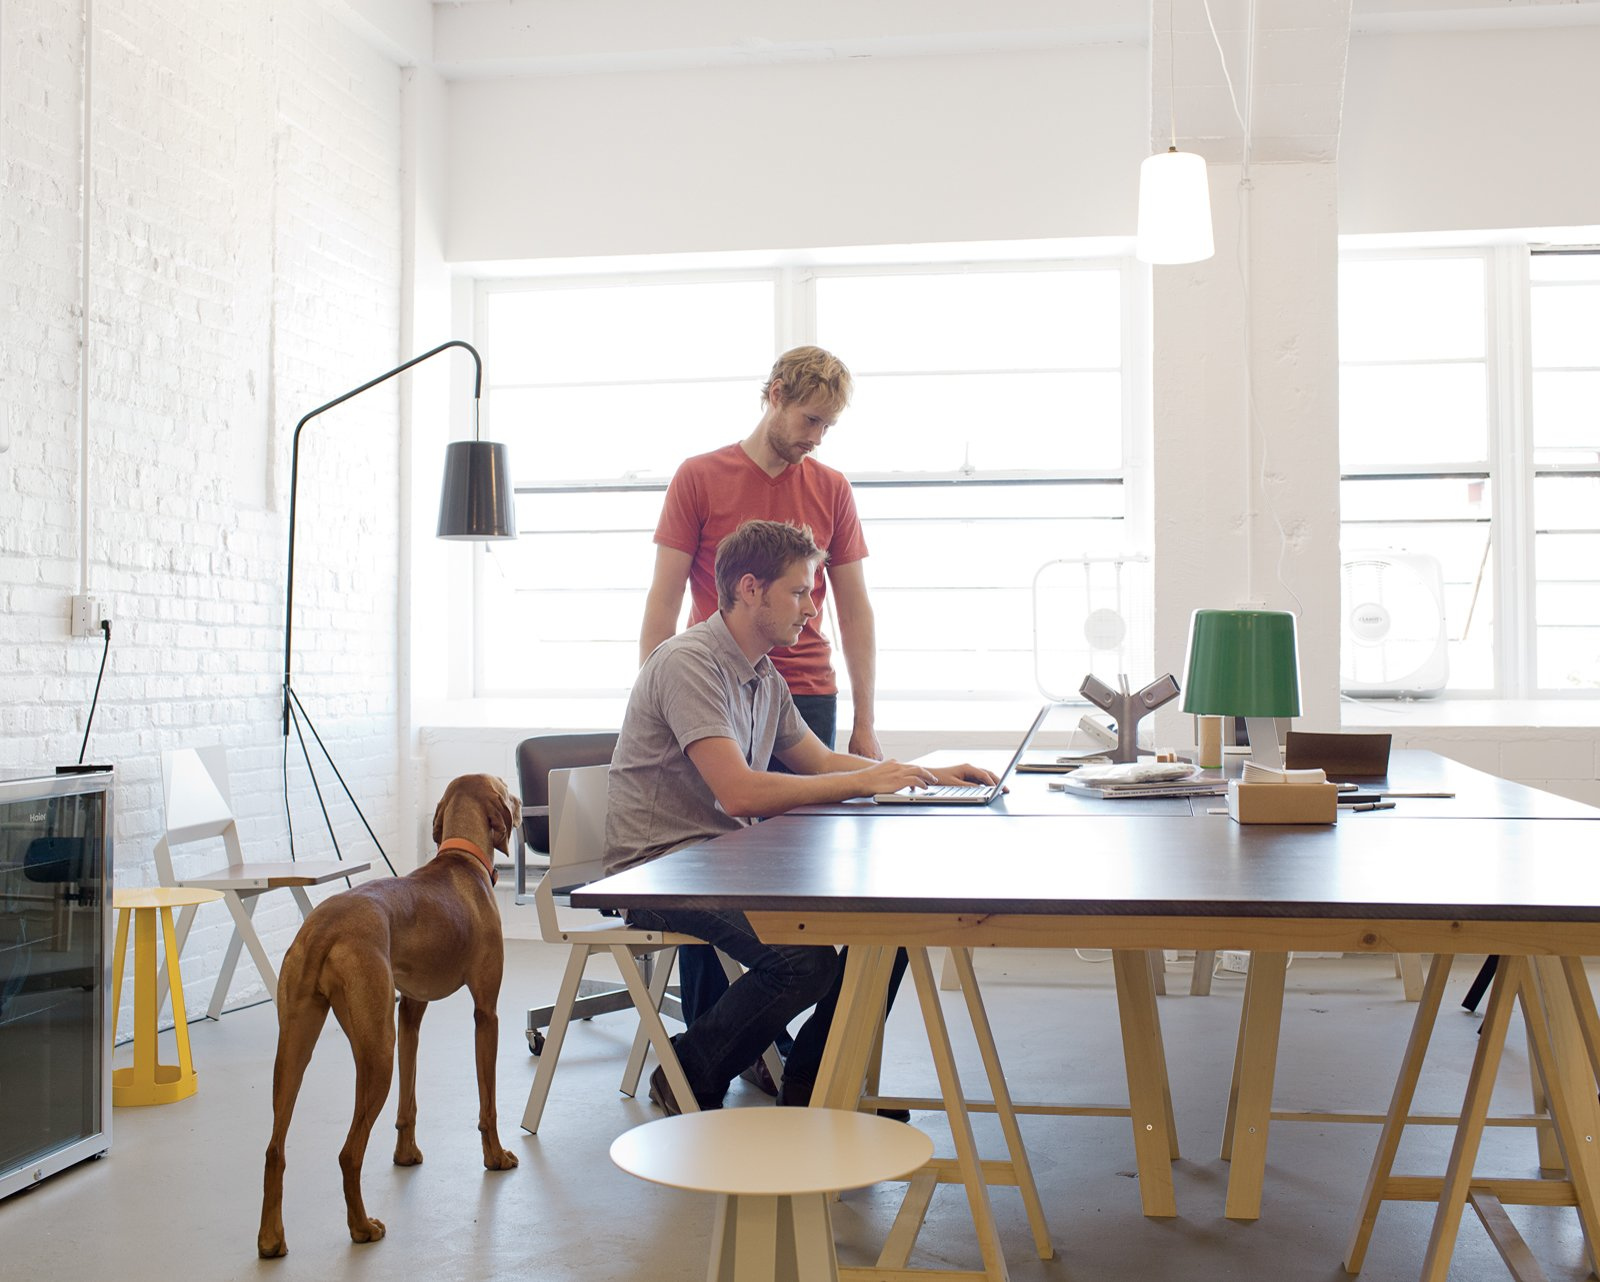 #workspace #office #interior #inside #window #seatingdesign #interiordesign #desk #lighting #flow #chairs #stools #dog #lamp #misewellstudio   Photo by Daniel Shea  Dogs Who Love Modern Design by Brian Karo from Furniture